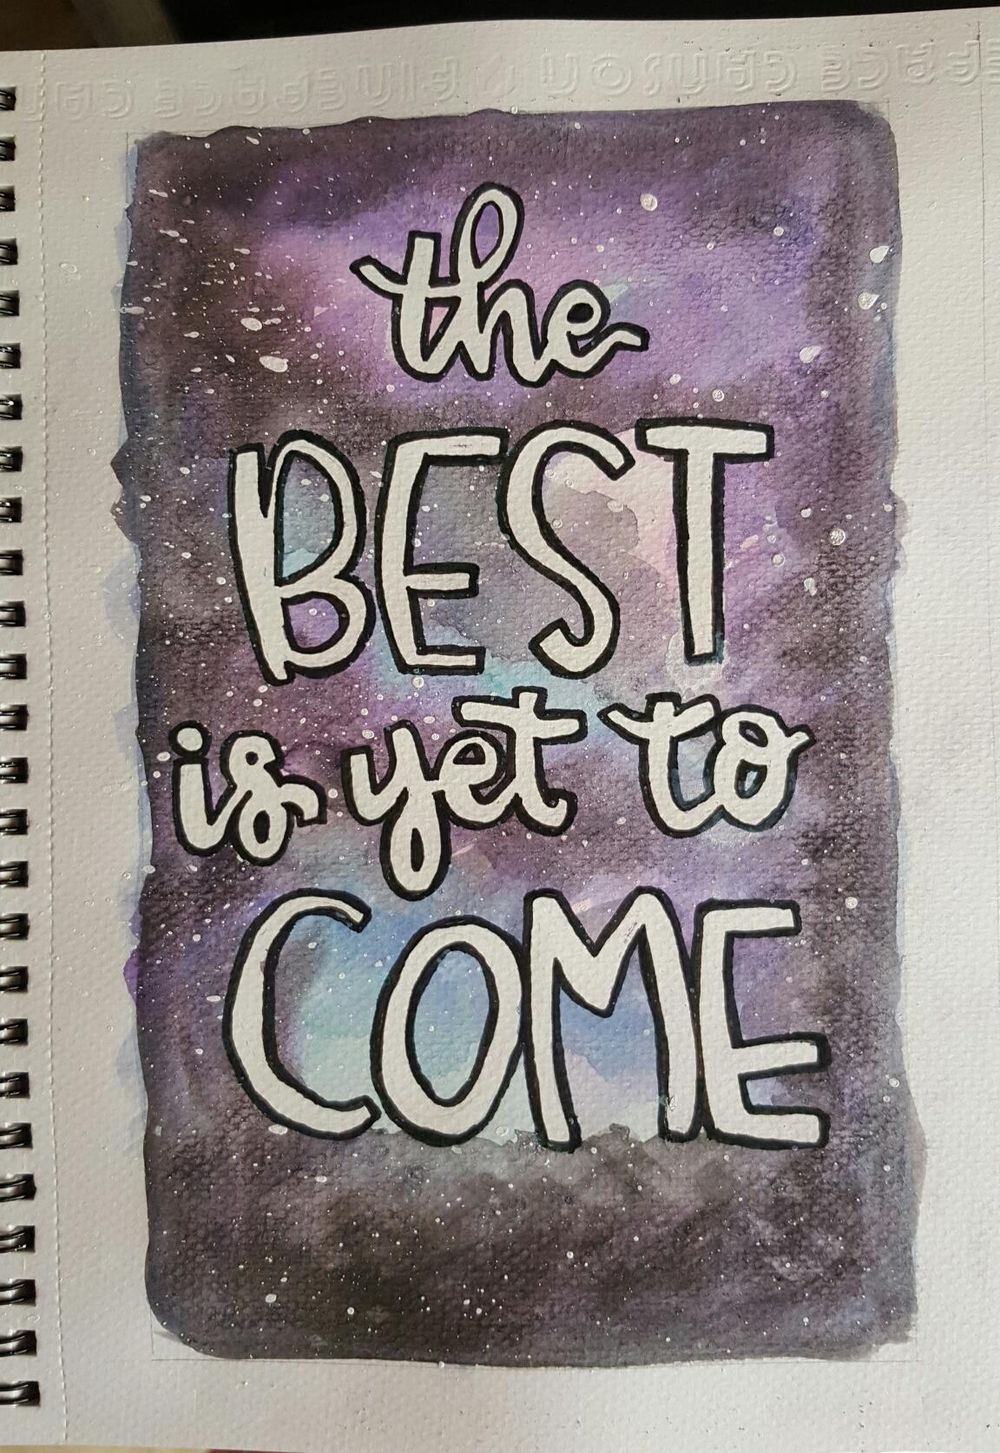 The best is yet to come - image 5 - student project